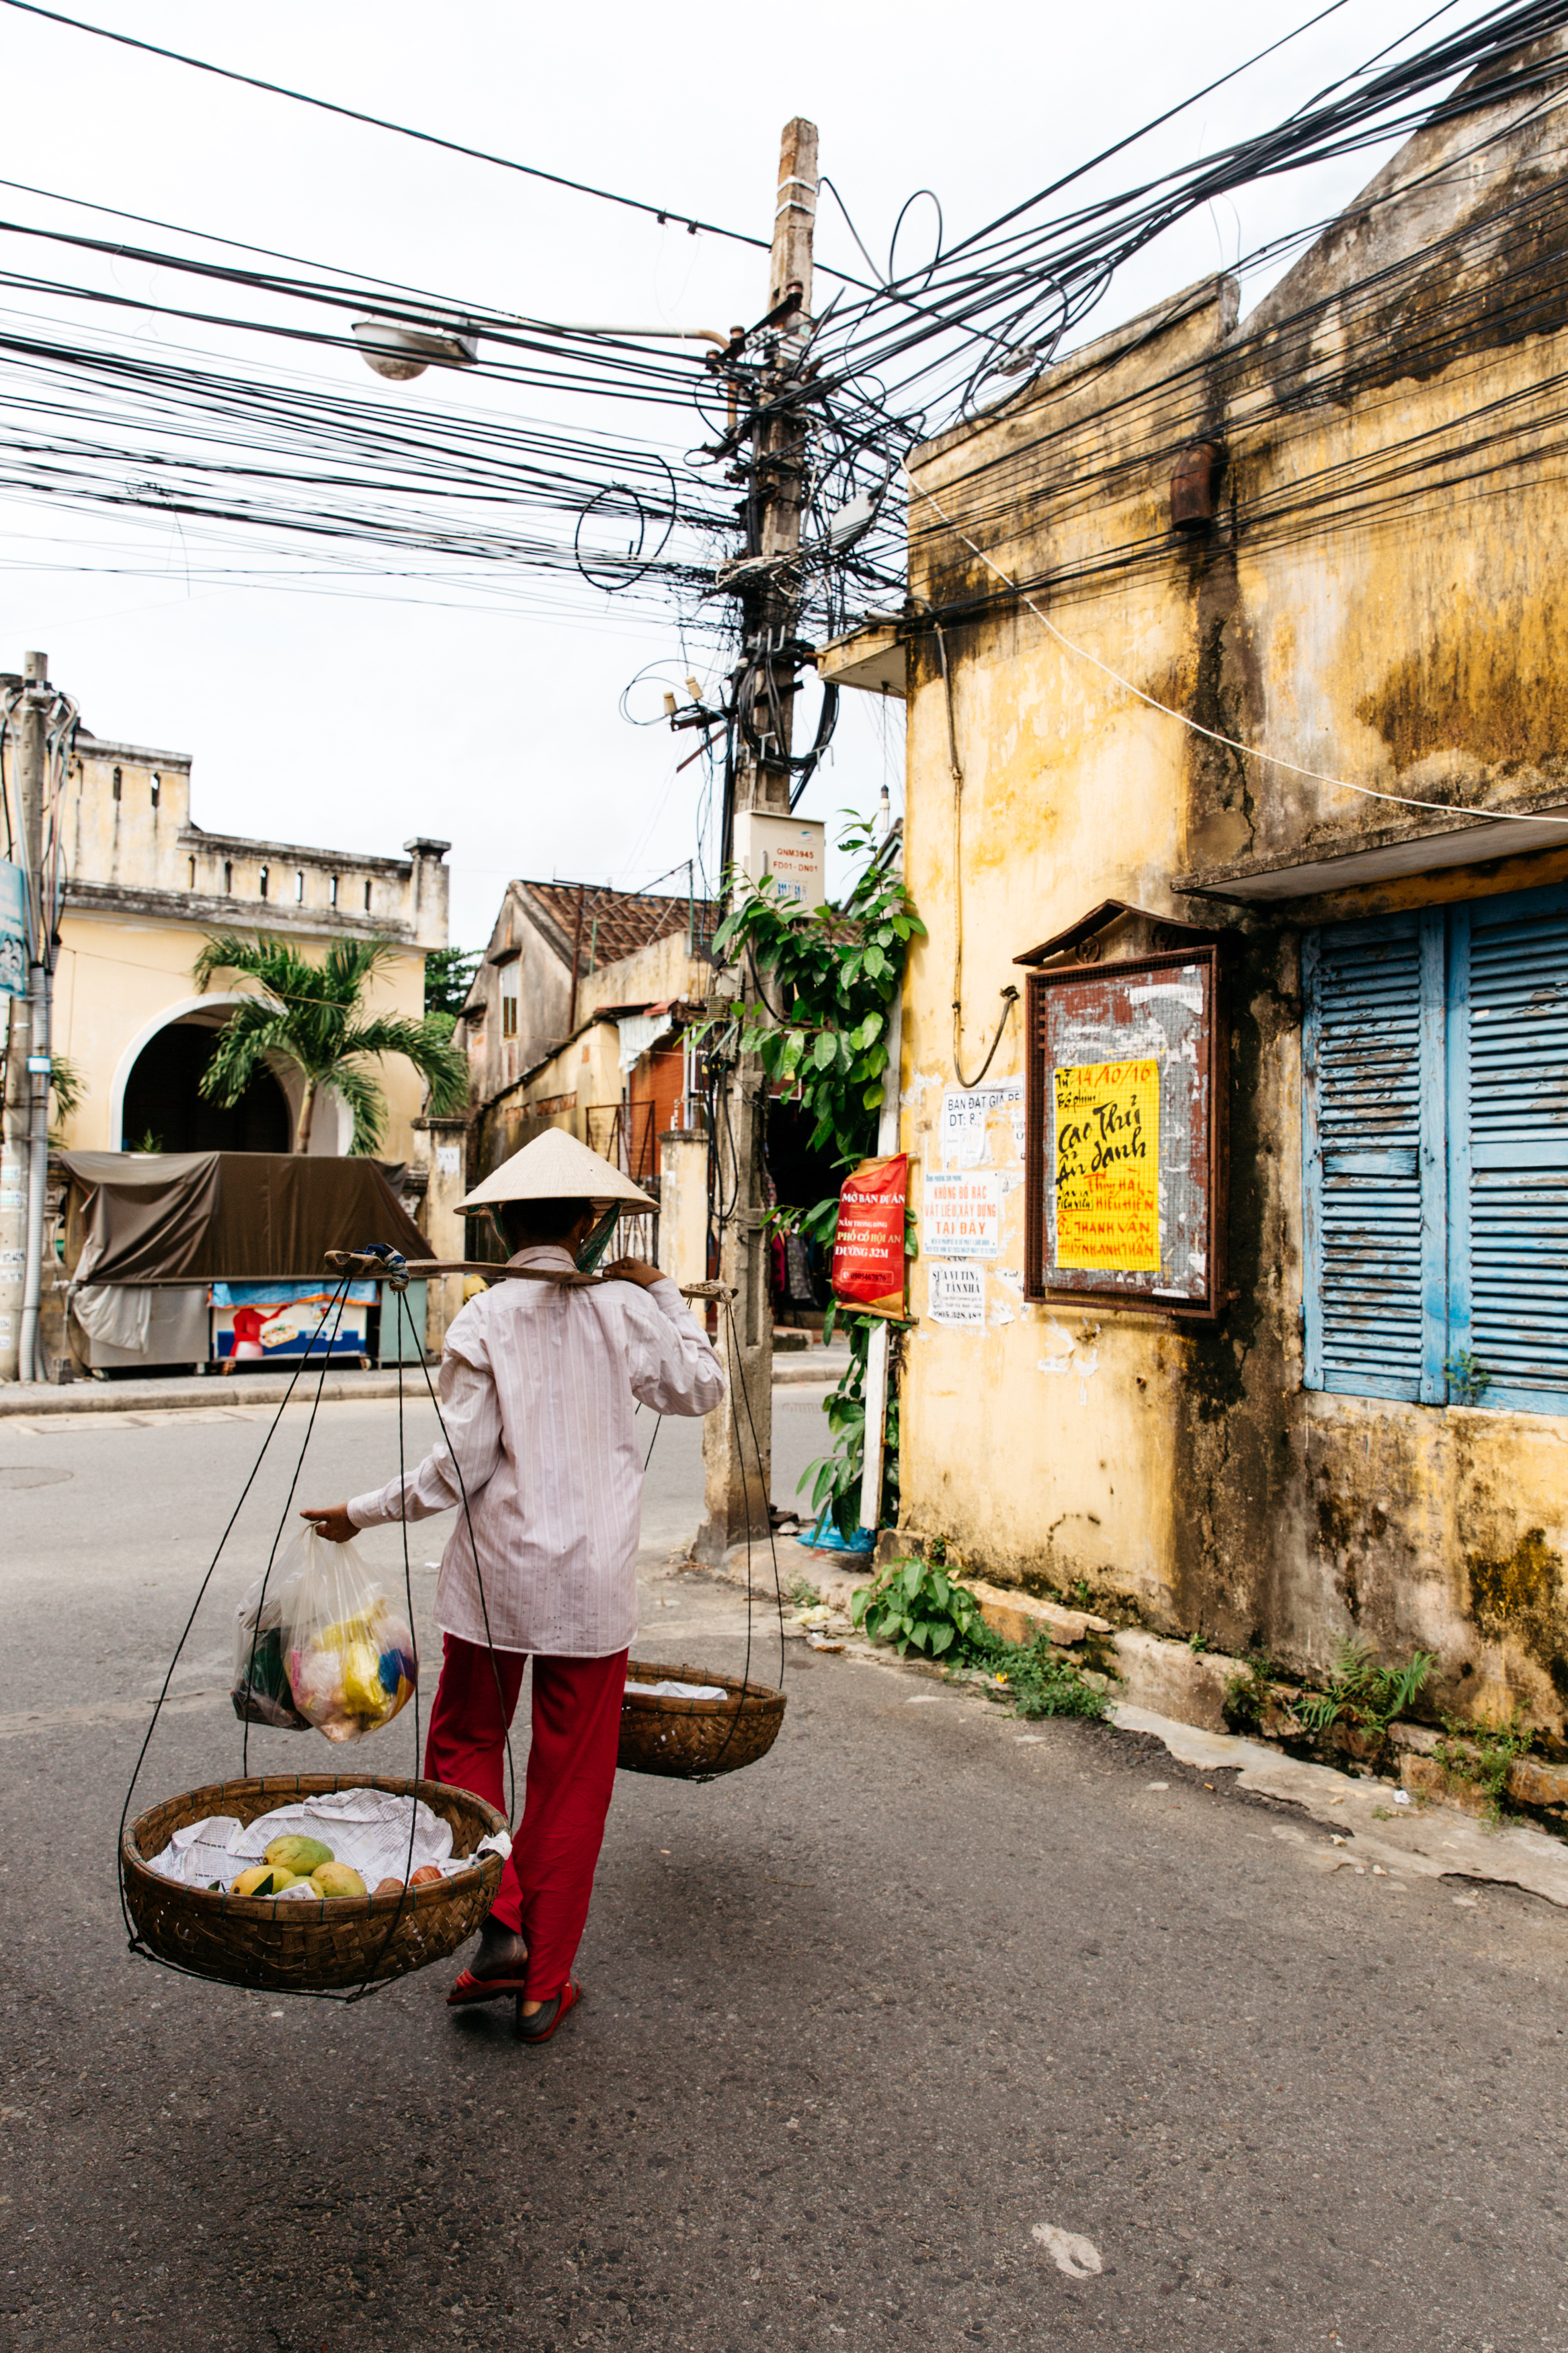 Delicious-HoiAnVietnam-Hoi An Old Town Scenes-10.jpg